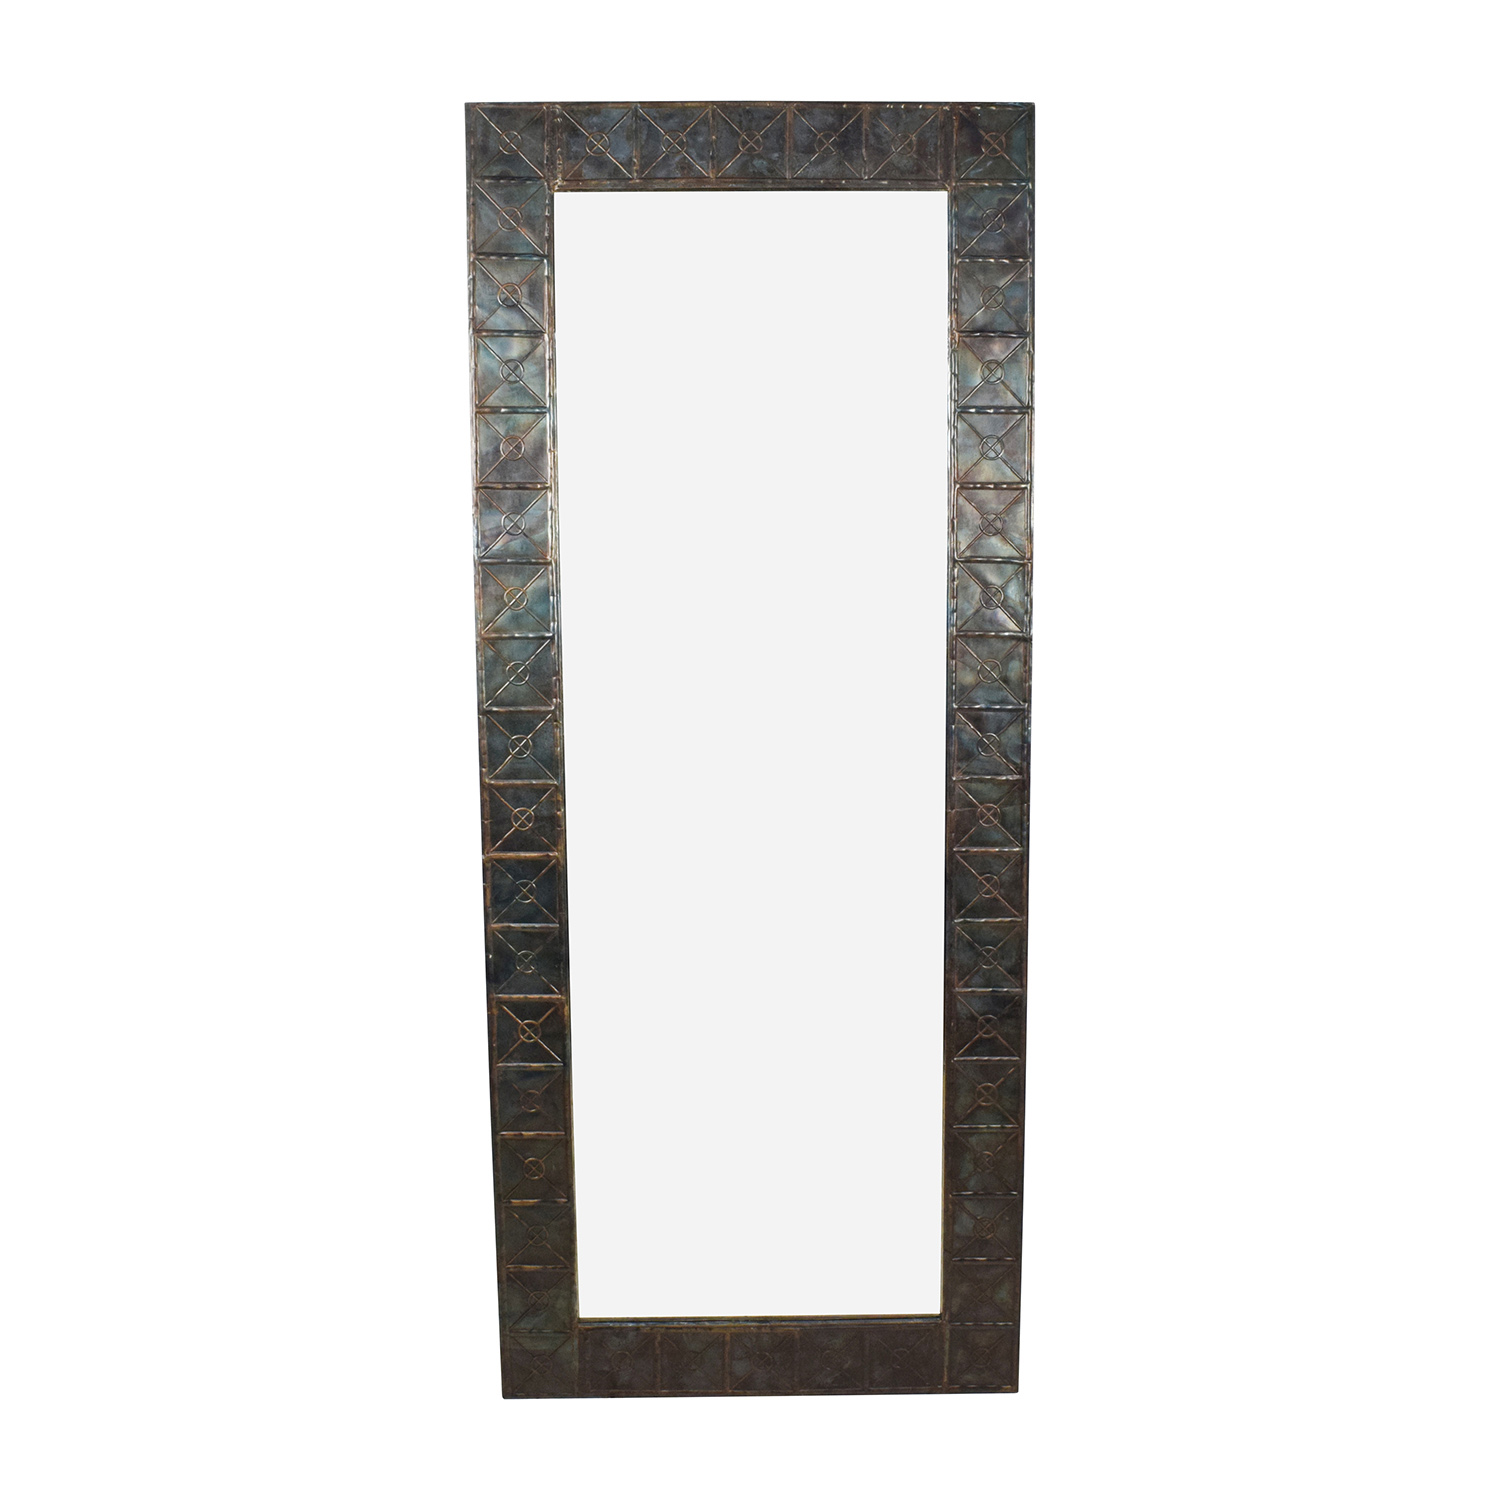 shop West Elm West Elm Metal Framed Mirror online